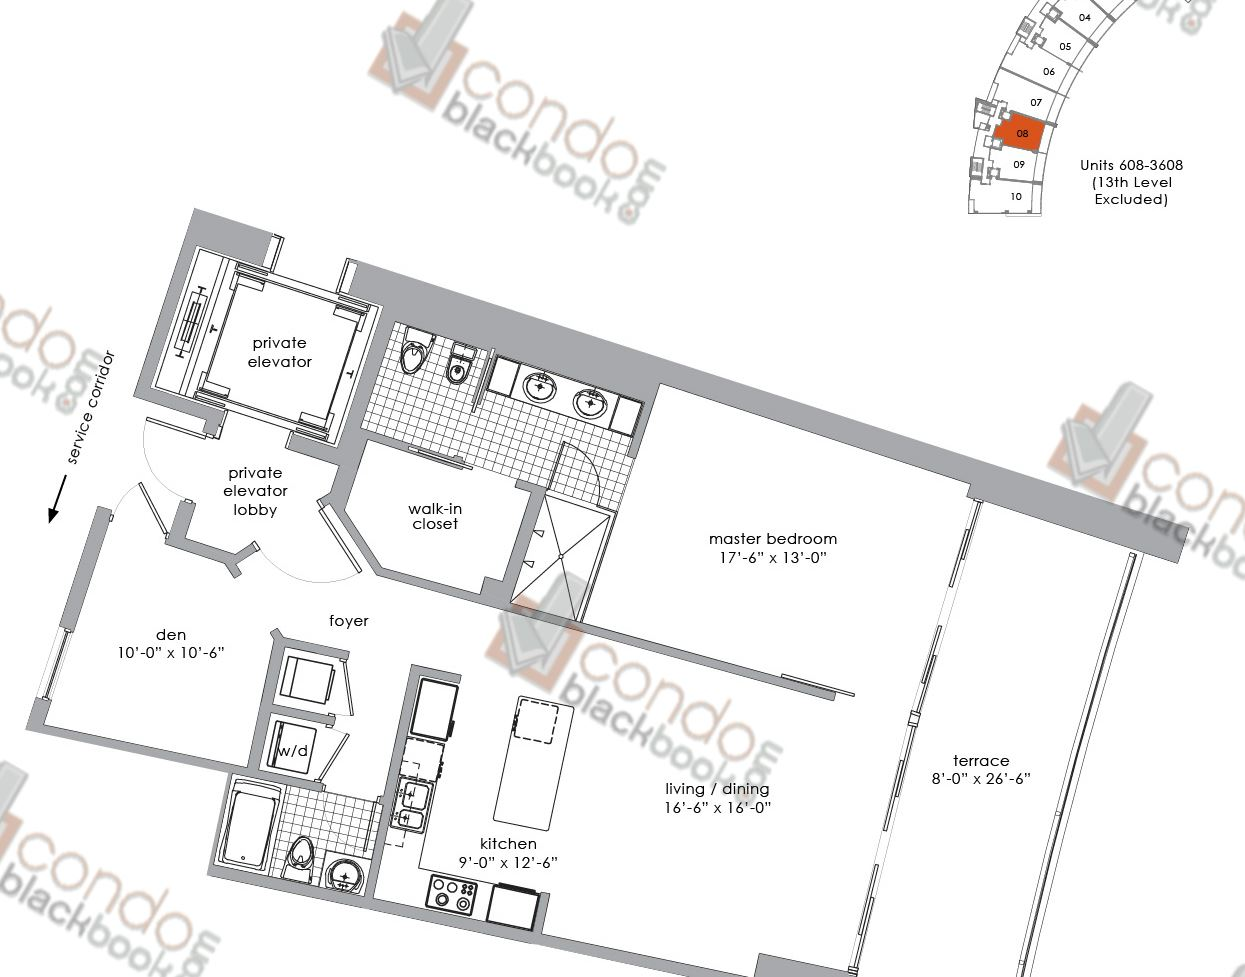 Floor plan for Paramount Bay Edgewater Miami, model 08, line 08, 1+Den/2 bedrooms, 1,214 sq ft